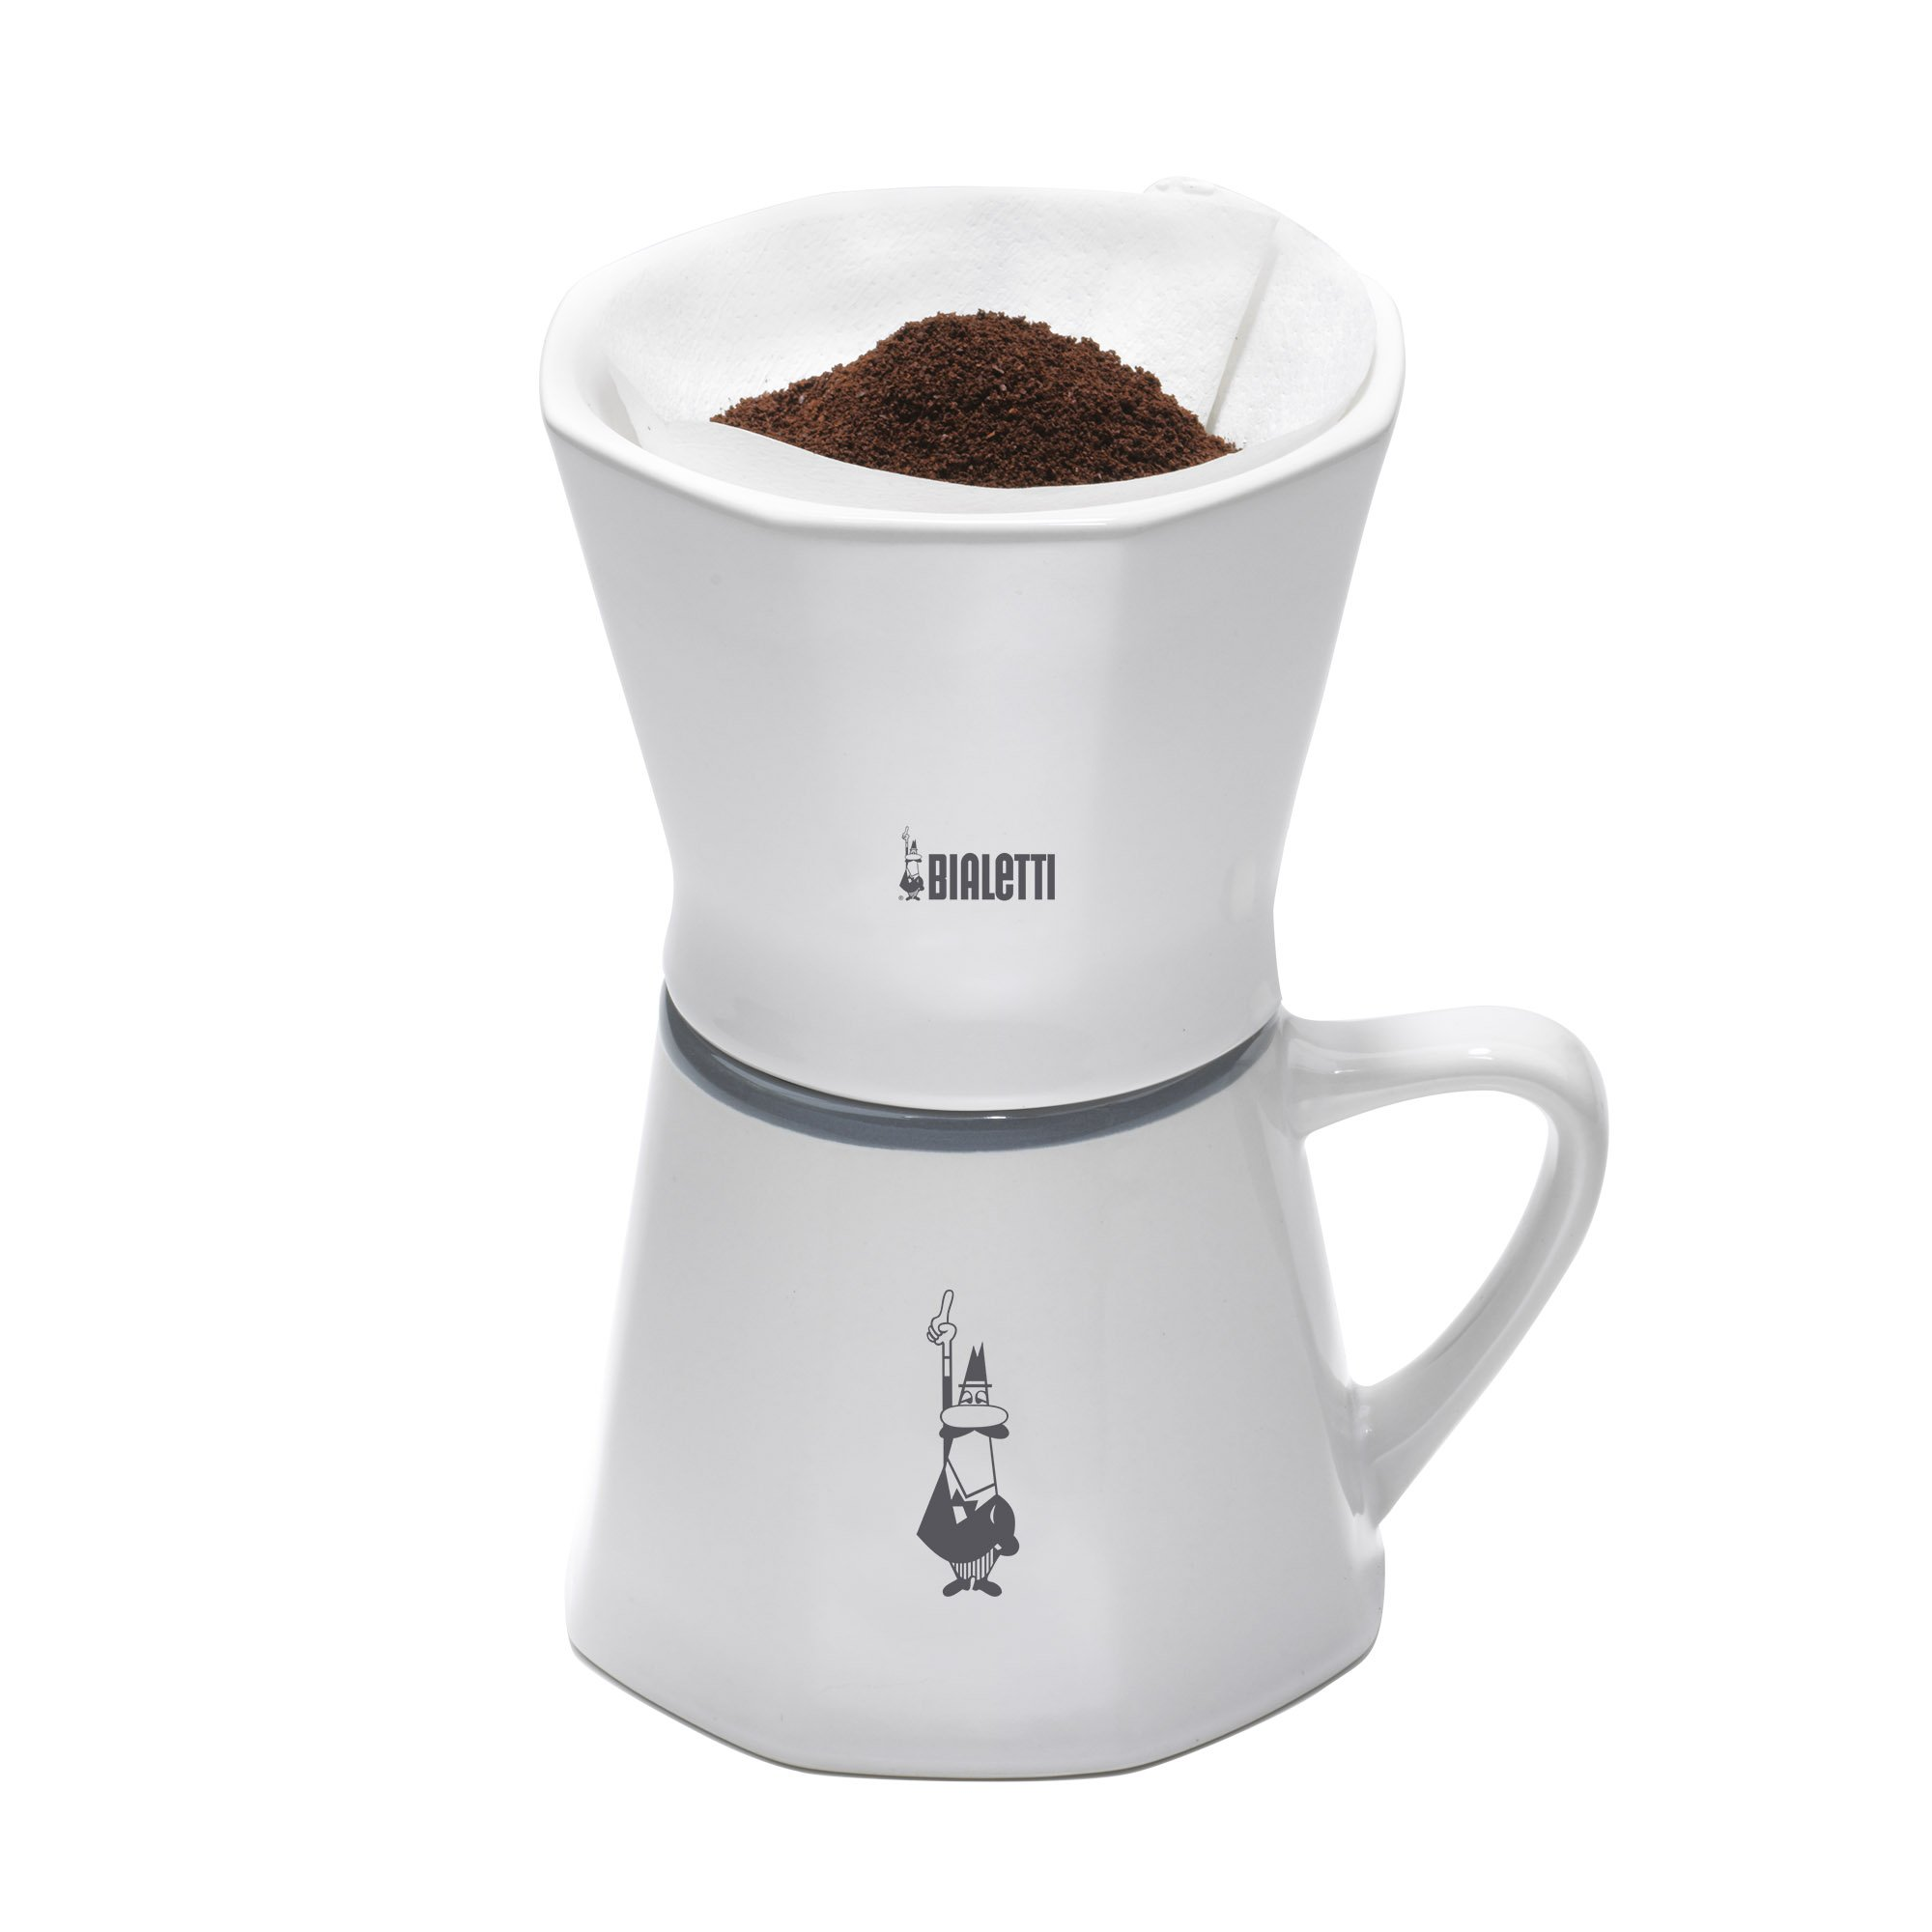 Bialetti 6750 2 Cup Porcelain Pourover Coffee Dripper with Mug, White